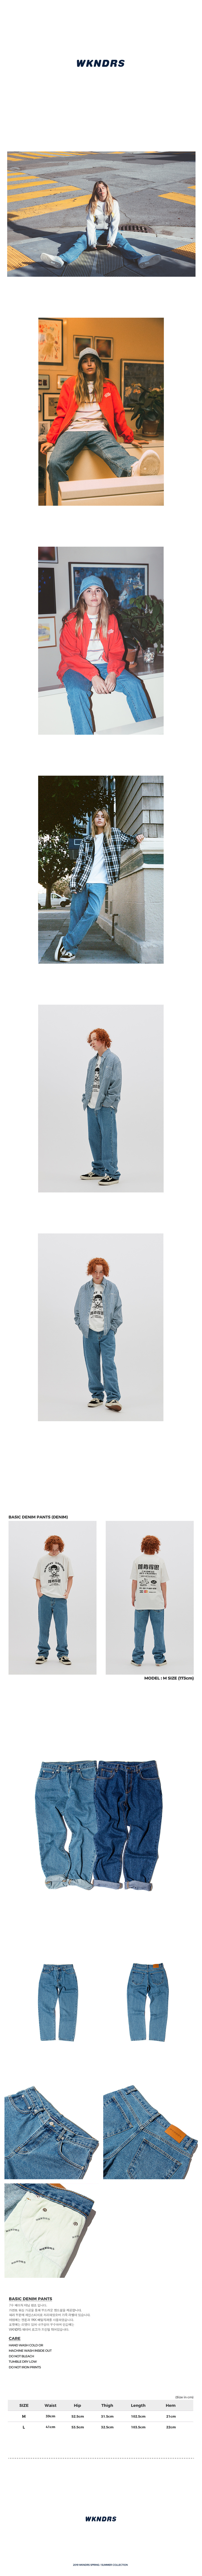 위캔더스(WKNDRS) BASIC DENIM PANTS (DENIM)